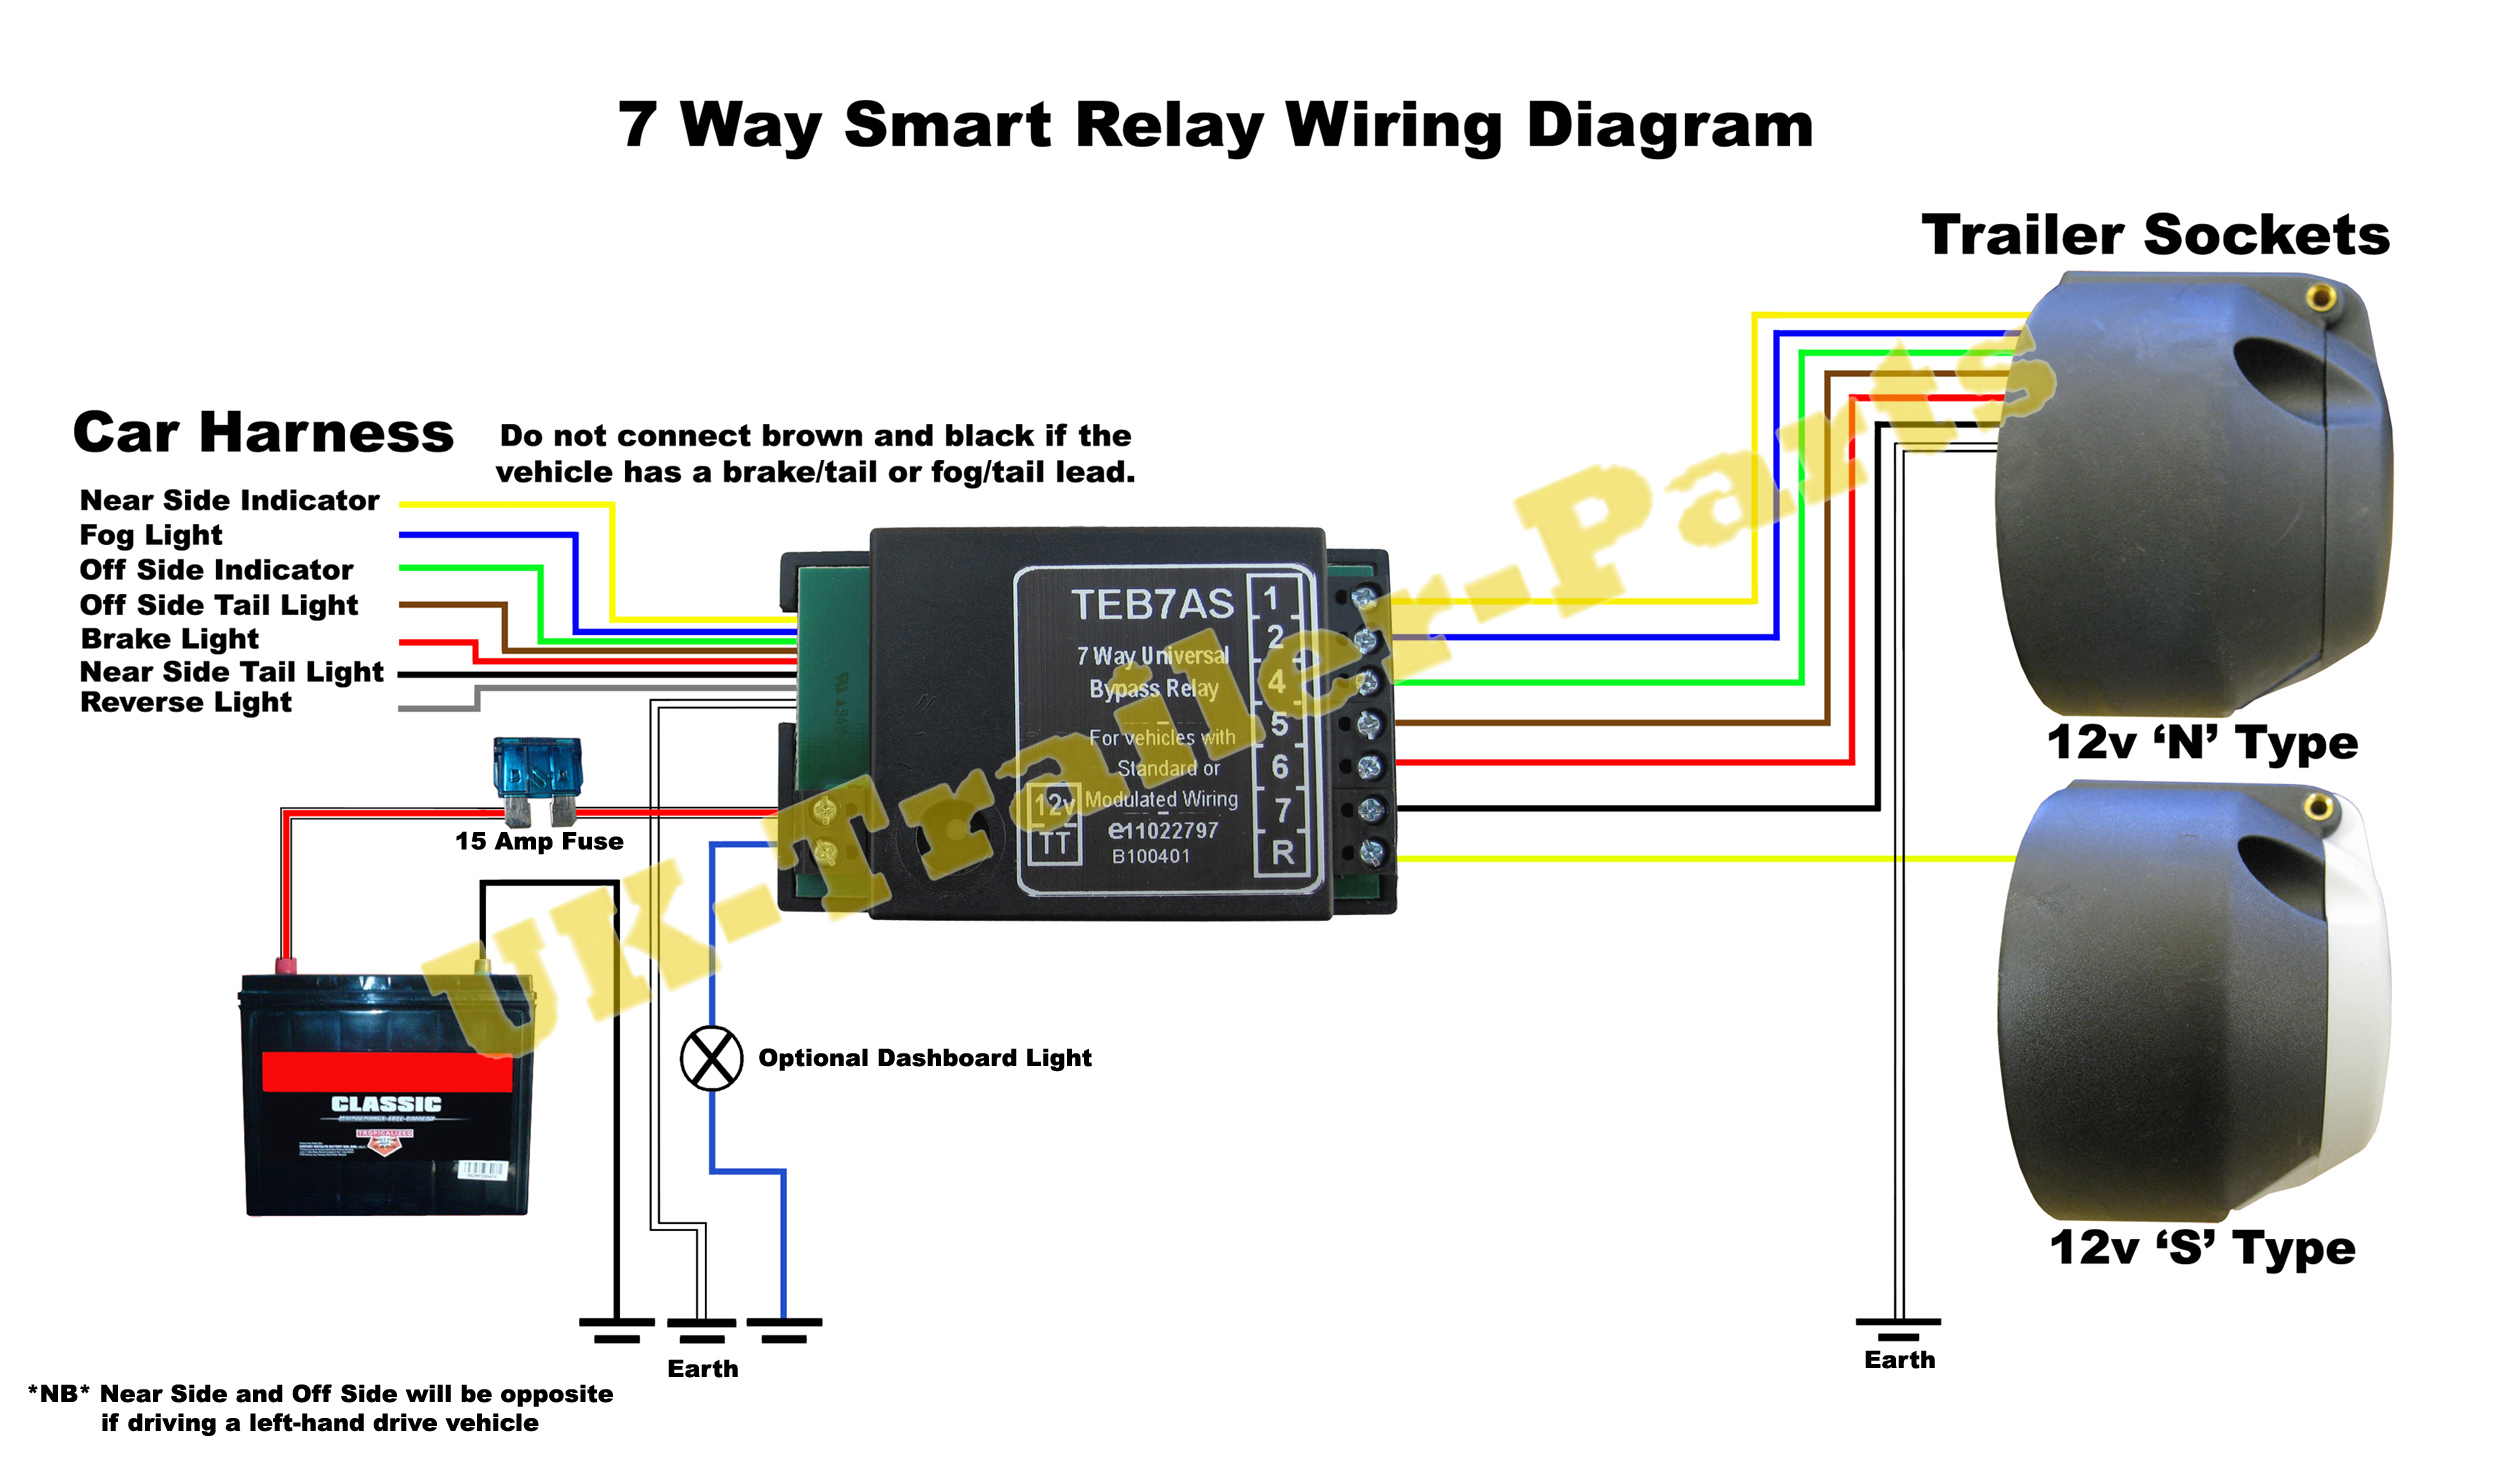 7 Way Universal Bypass Relay Wiring Diagram Uk Trailer Parts Ford S Max Fuse Box